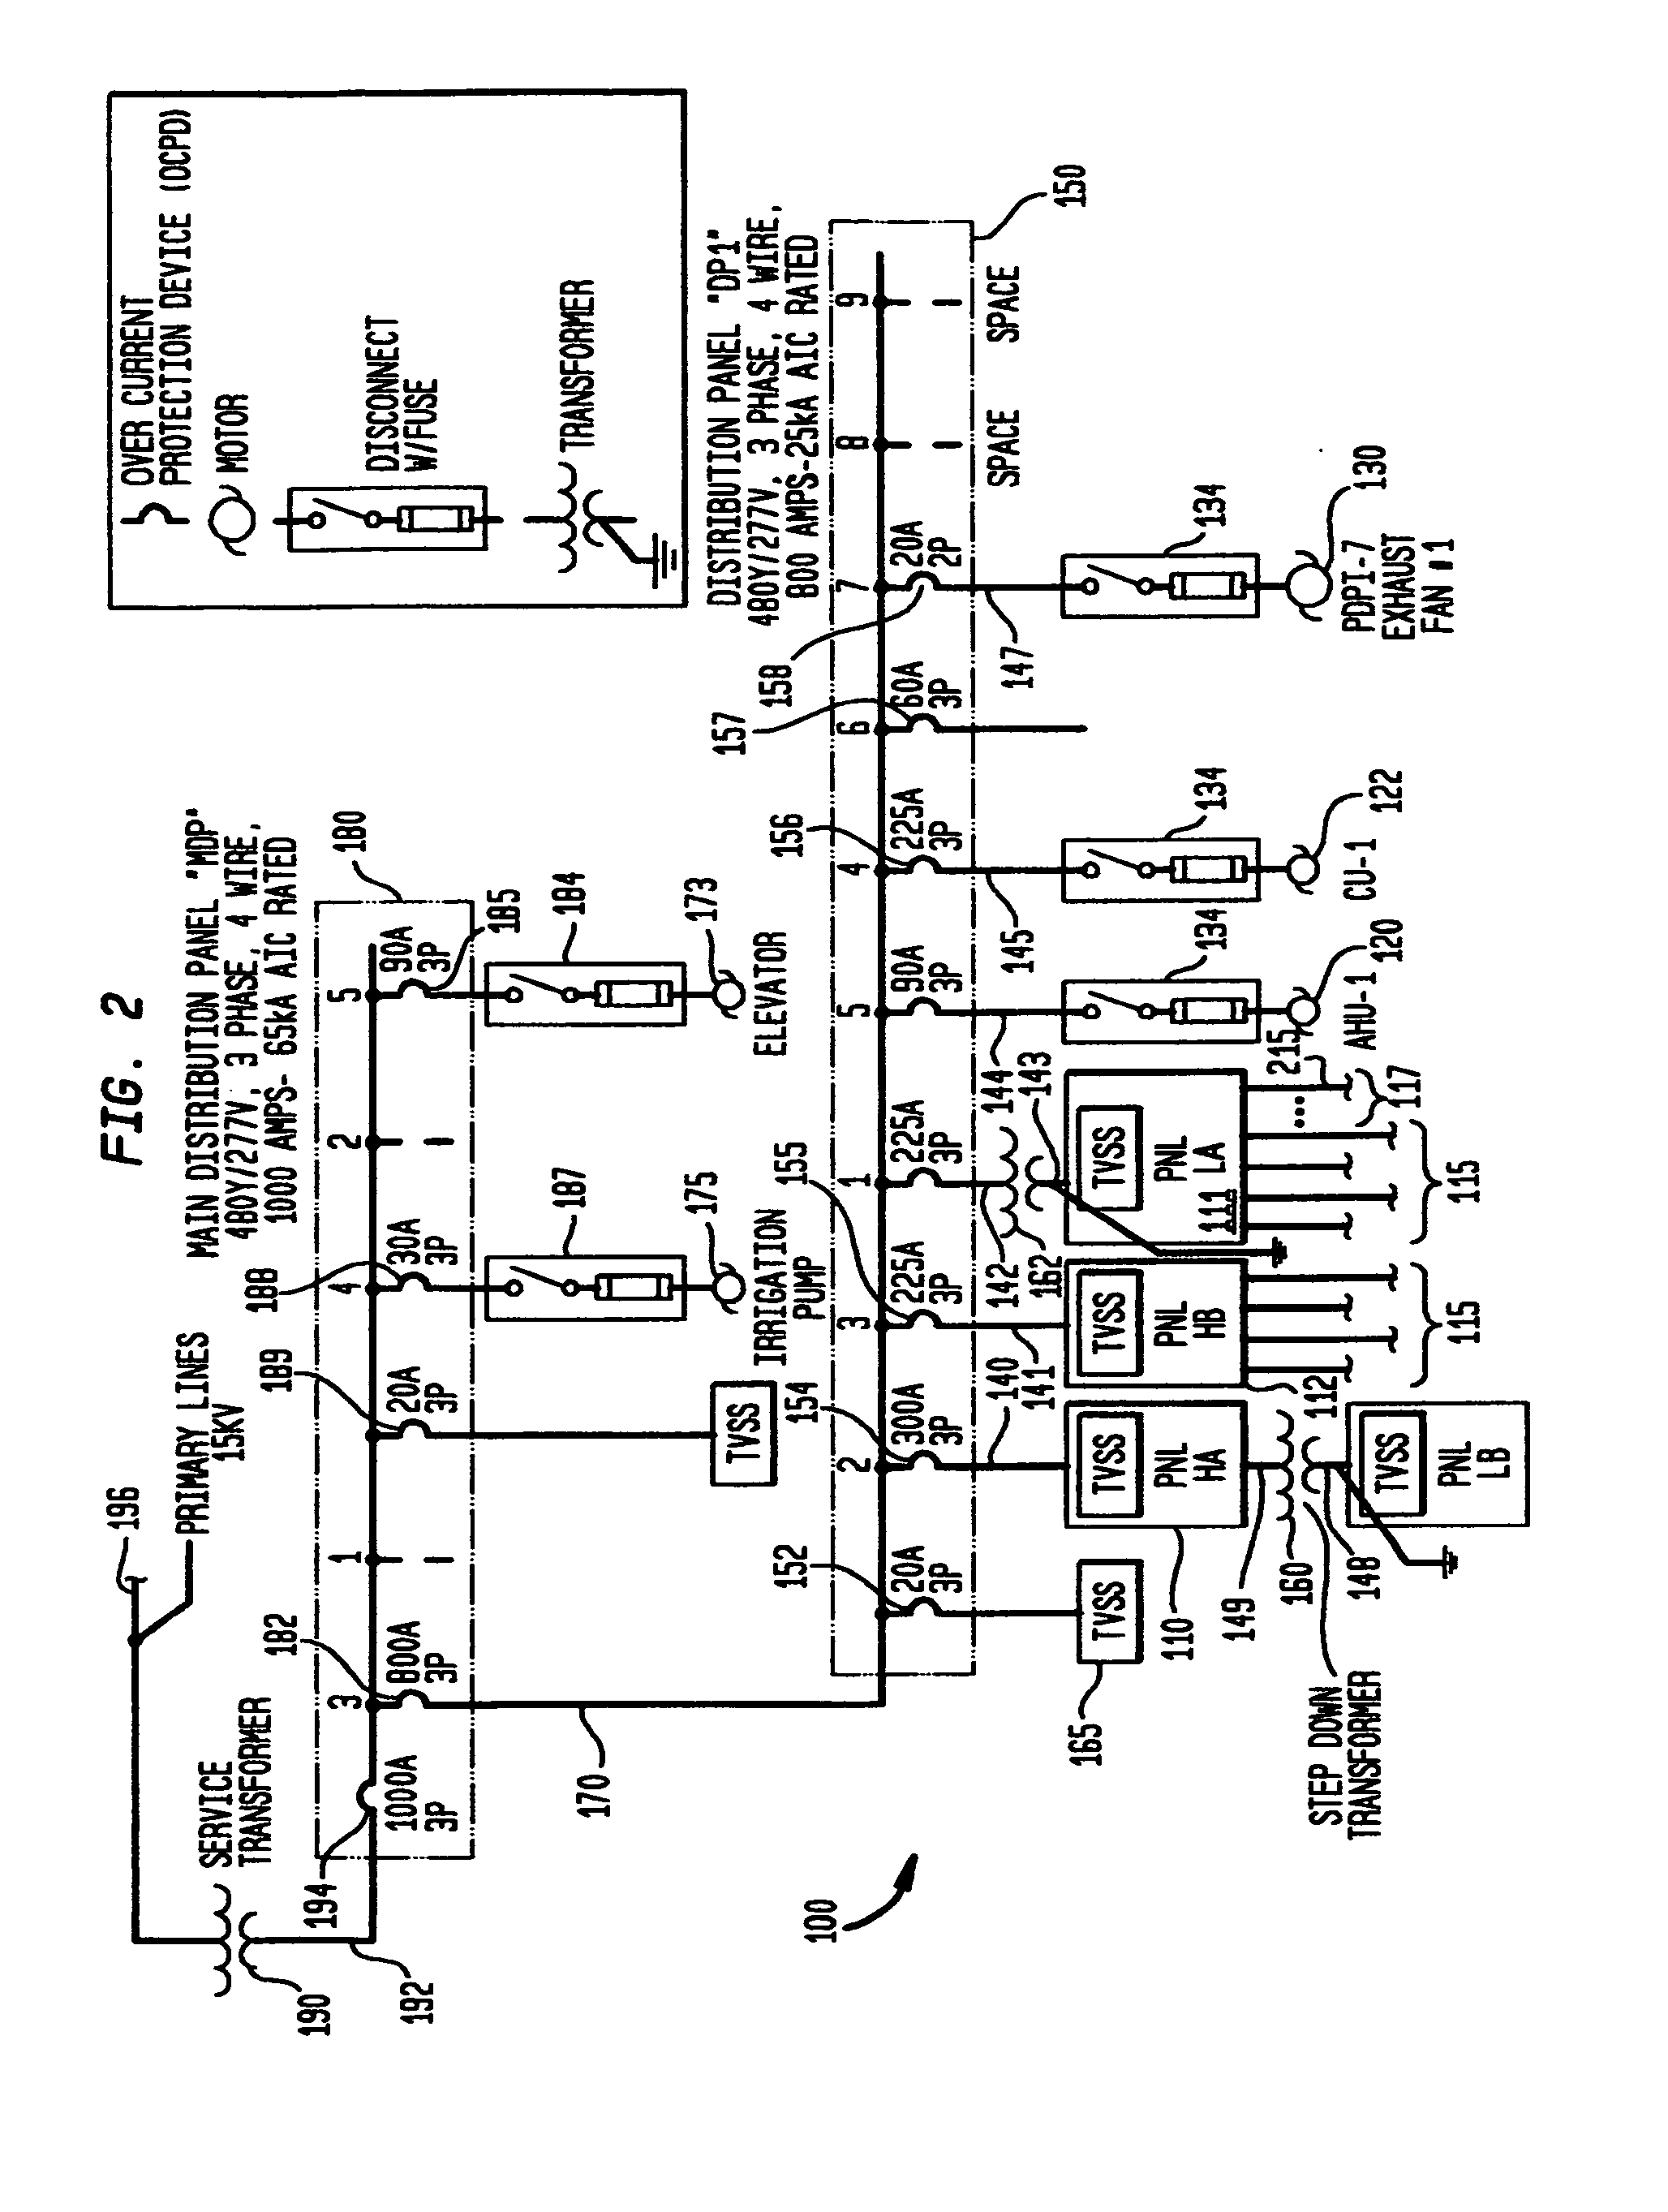 600 Amp 3 Phase Panel Engine Diagram And Wiring Diagram